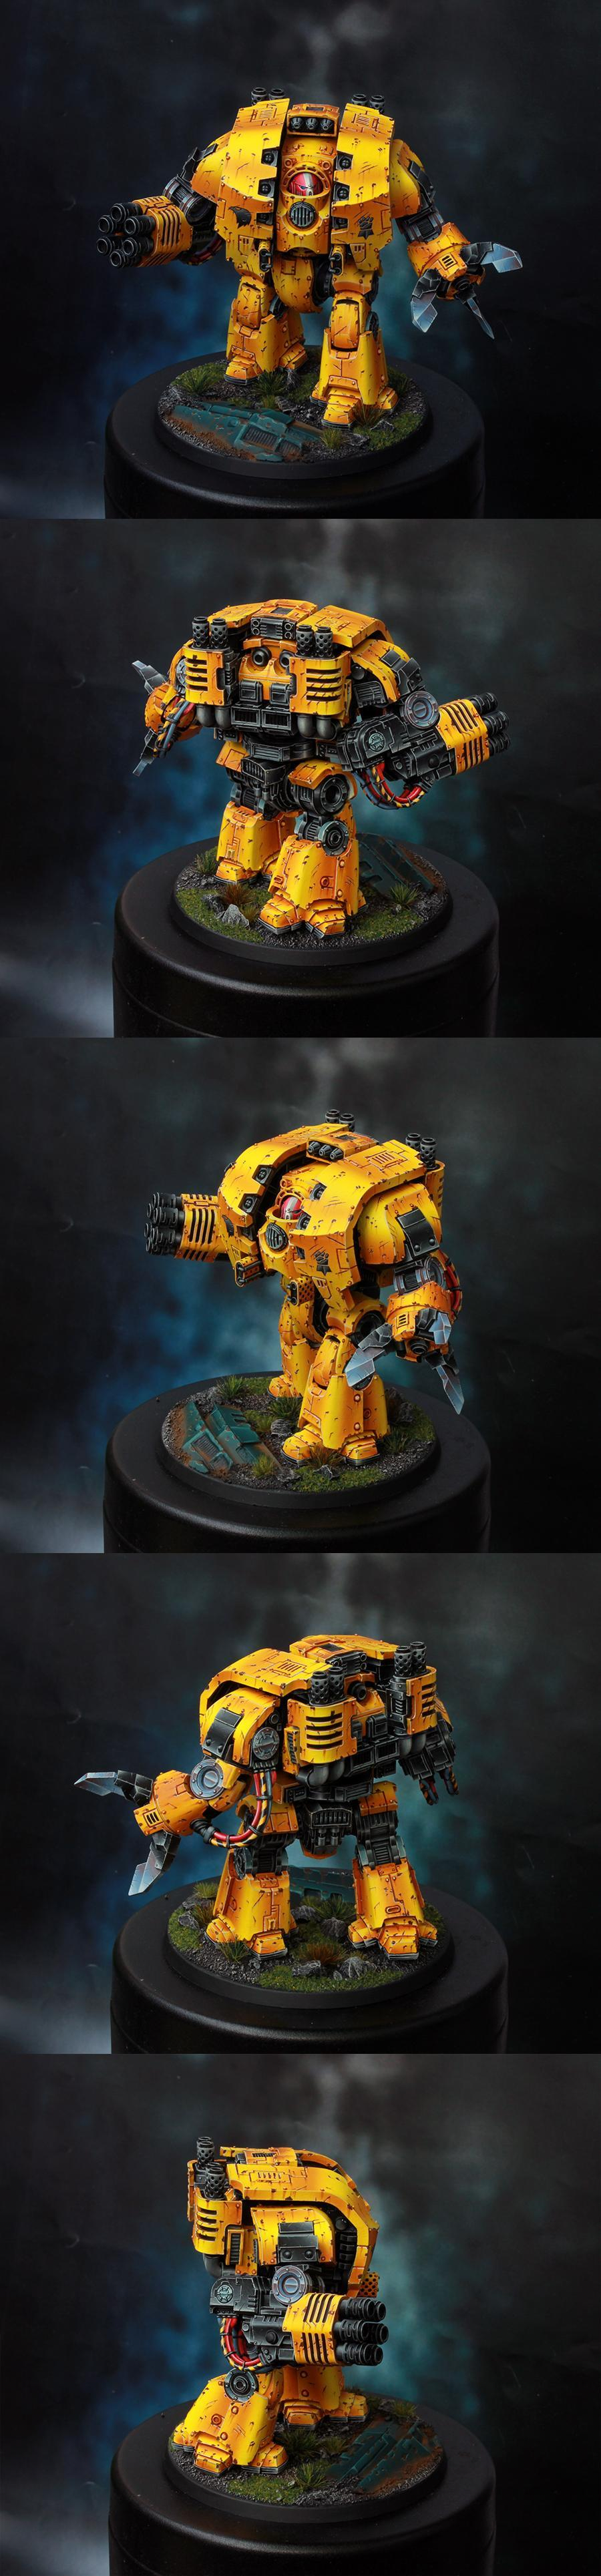 Dreadnought, Hendarion, Leviathan, Space Marines